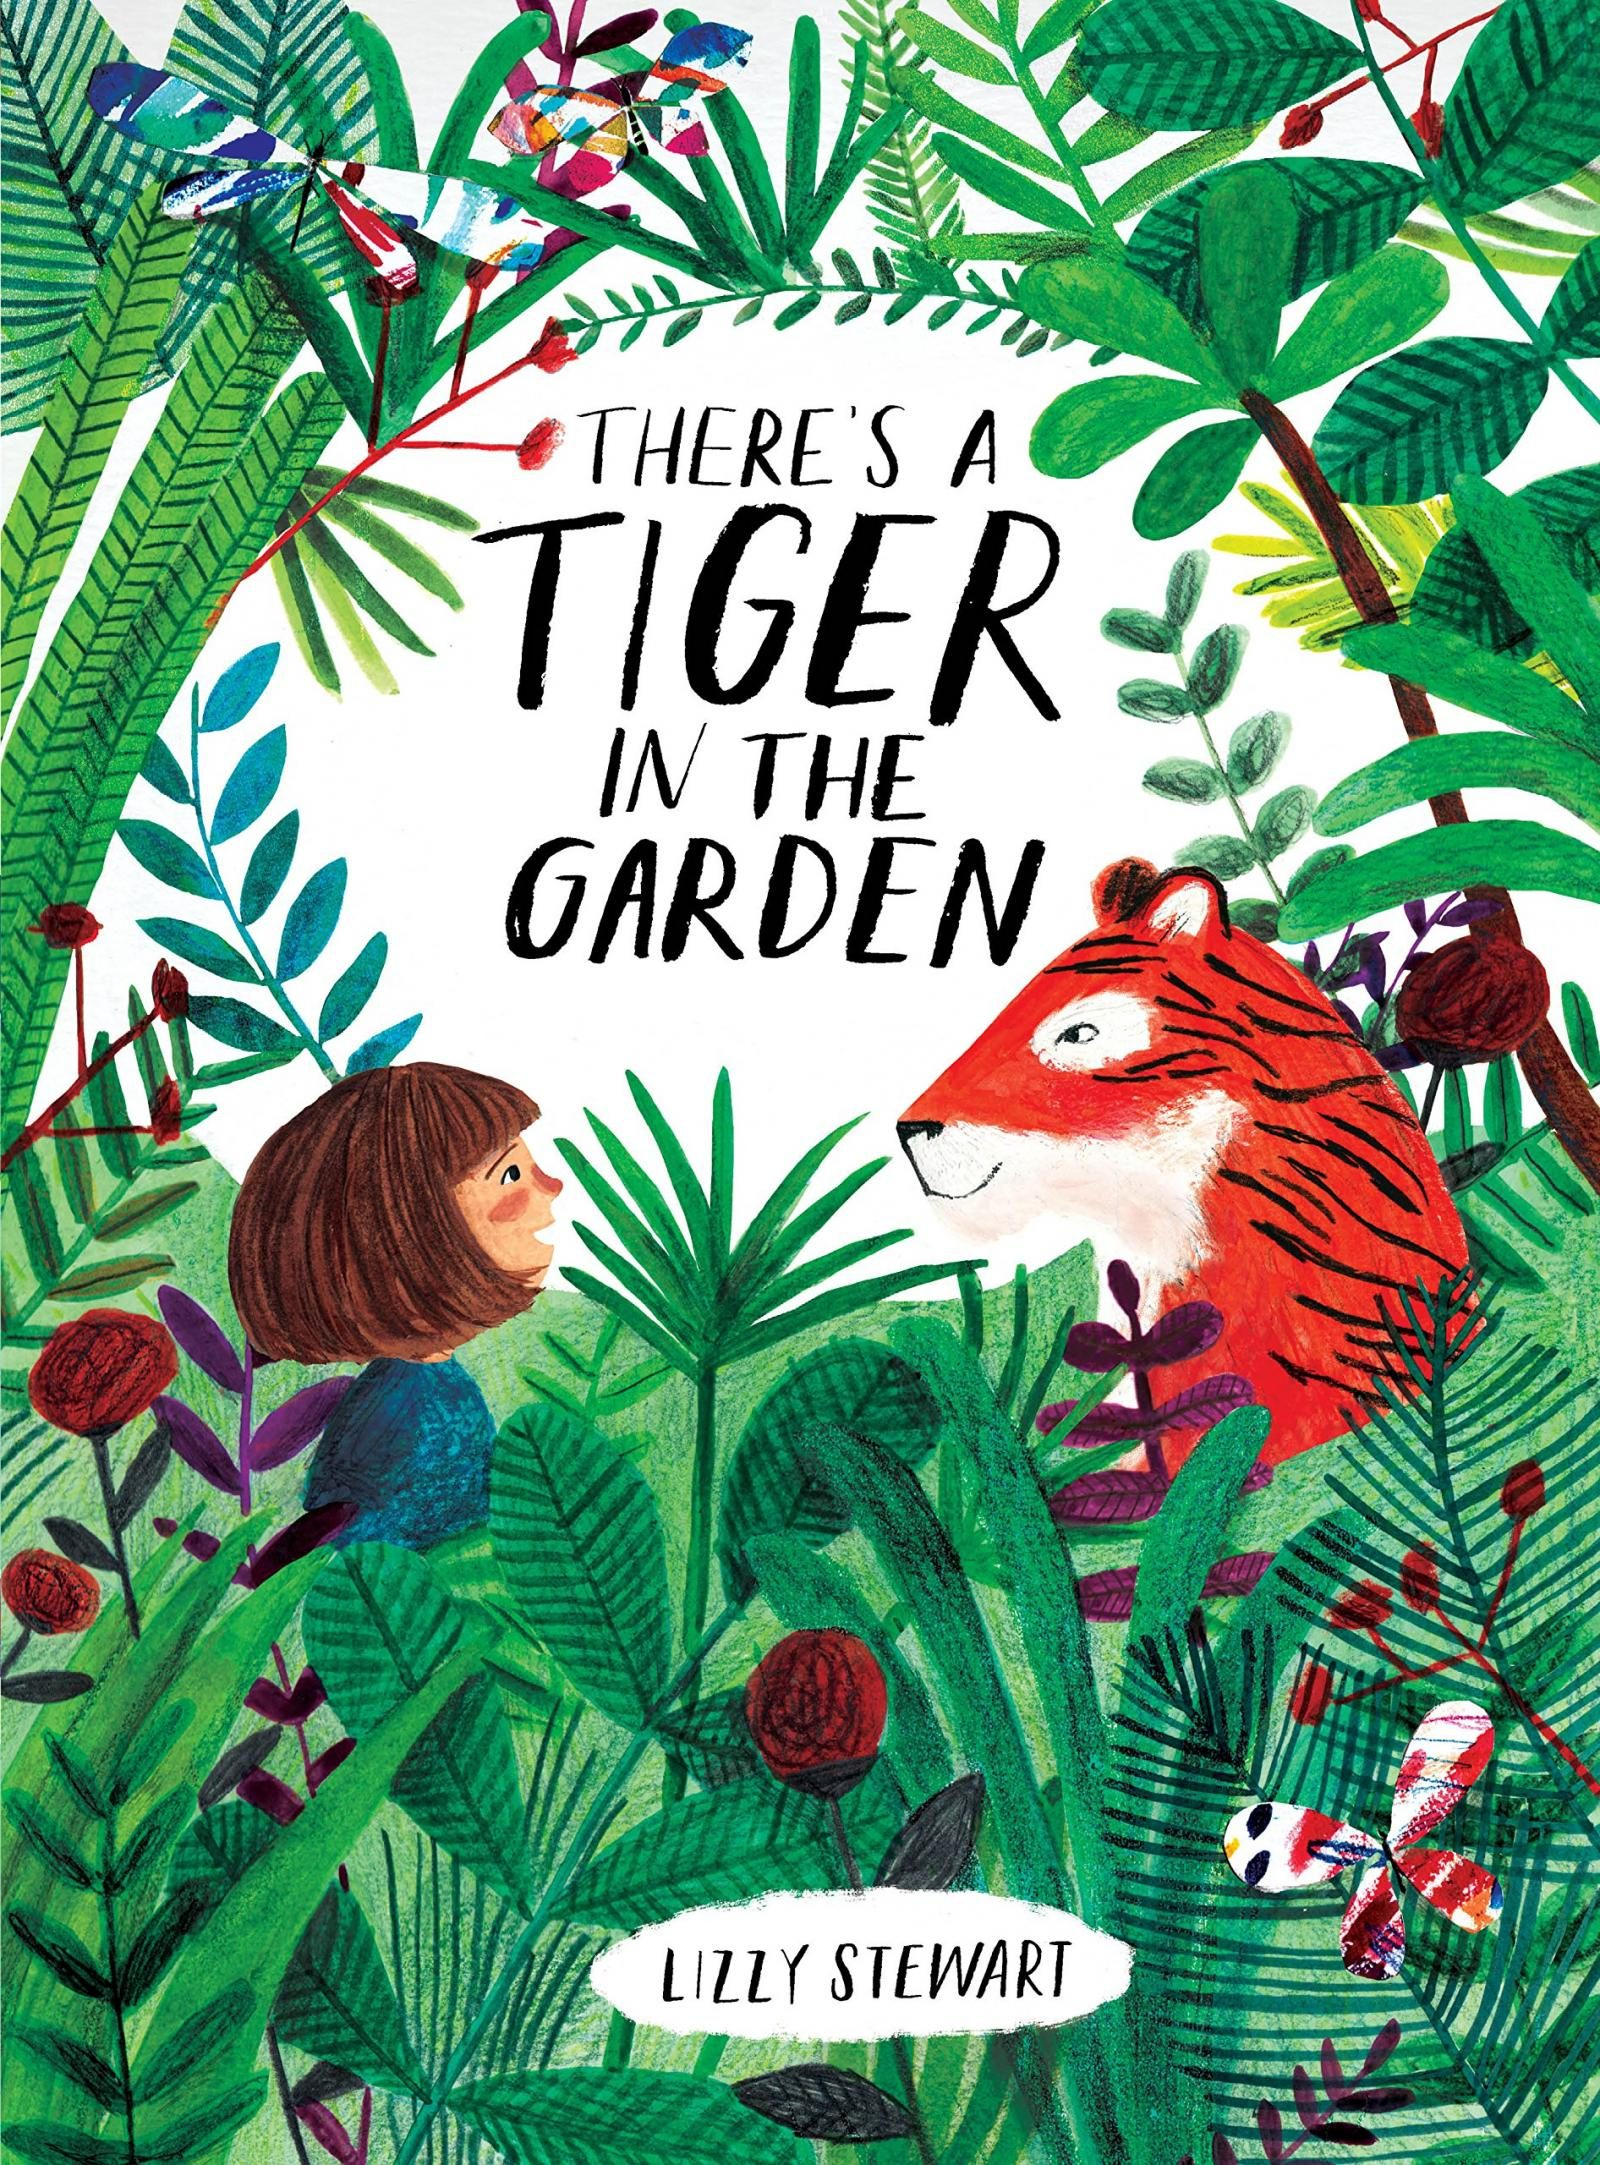 Books for toddlers - There's a tiger in the garden